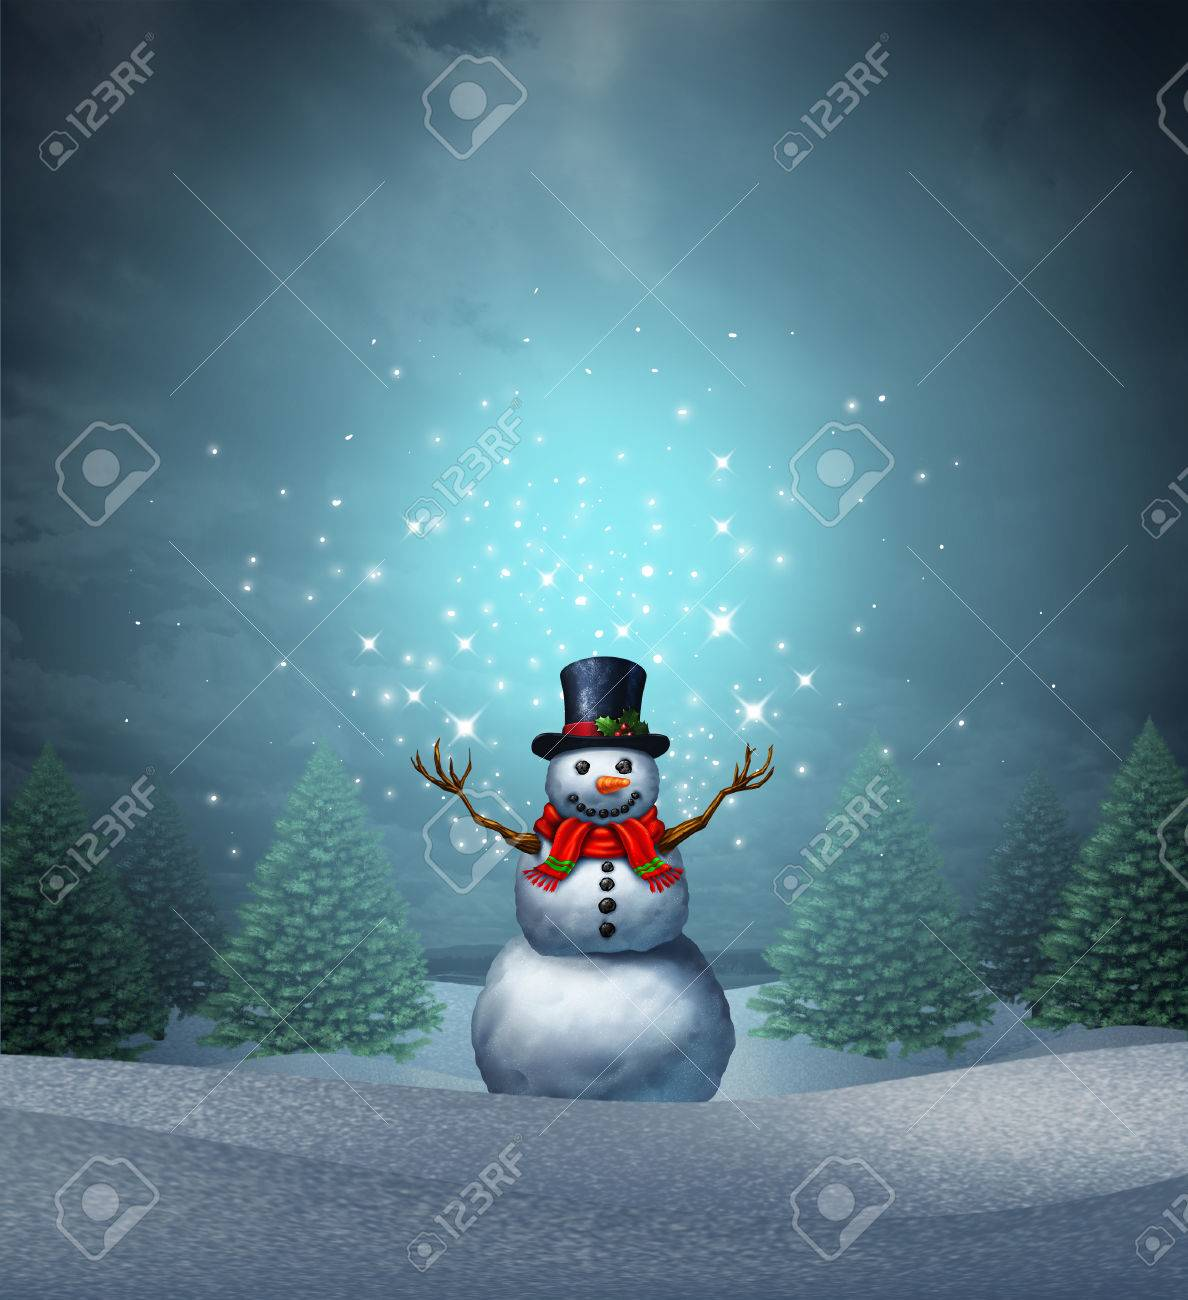 illustration magical snowman winter holiday as a merry christmas and happy new year greeting card with a cute happy snow character with glowing northern